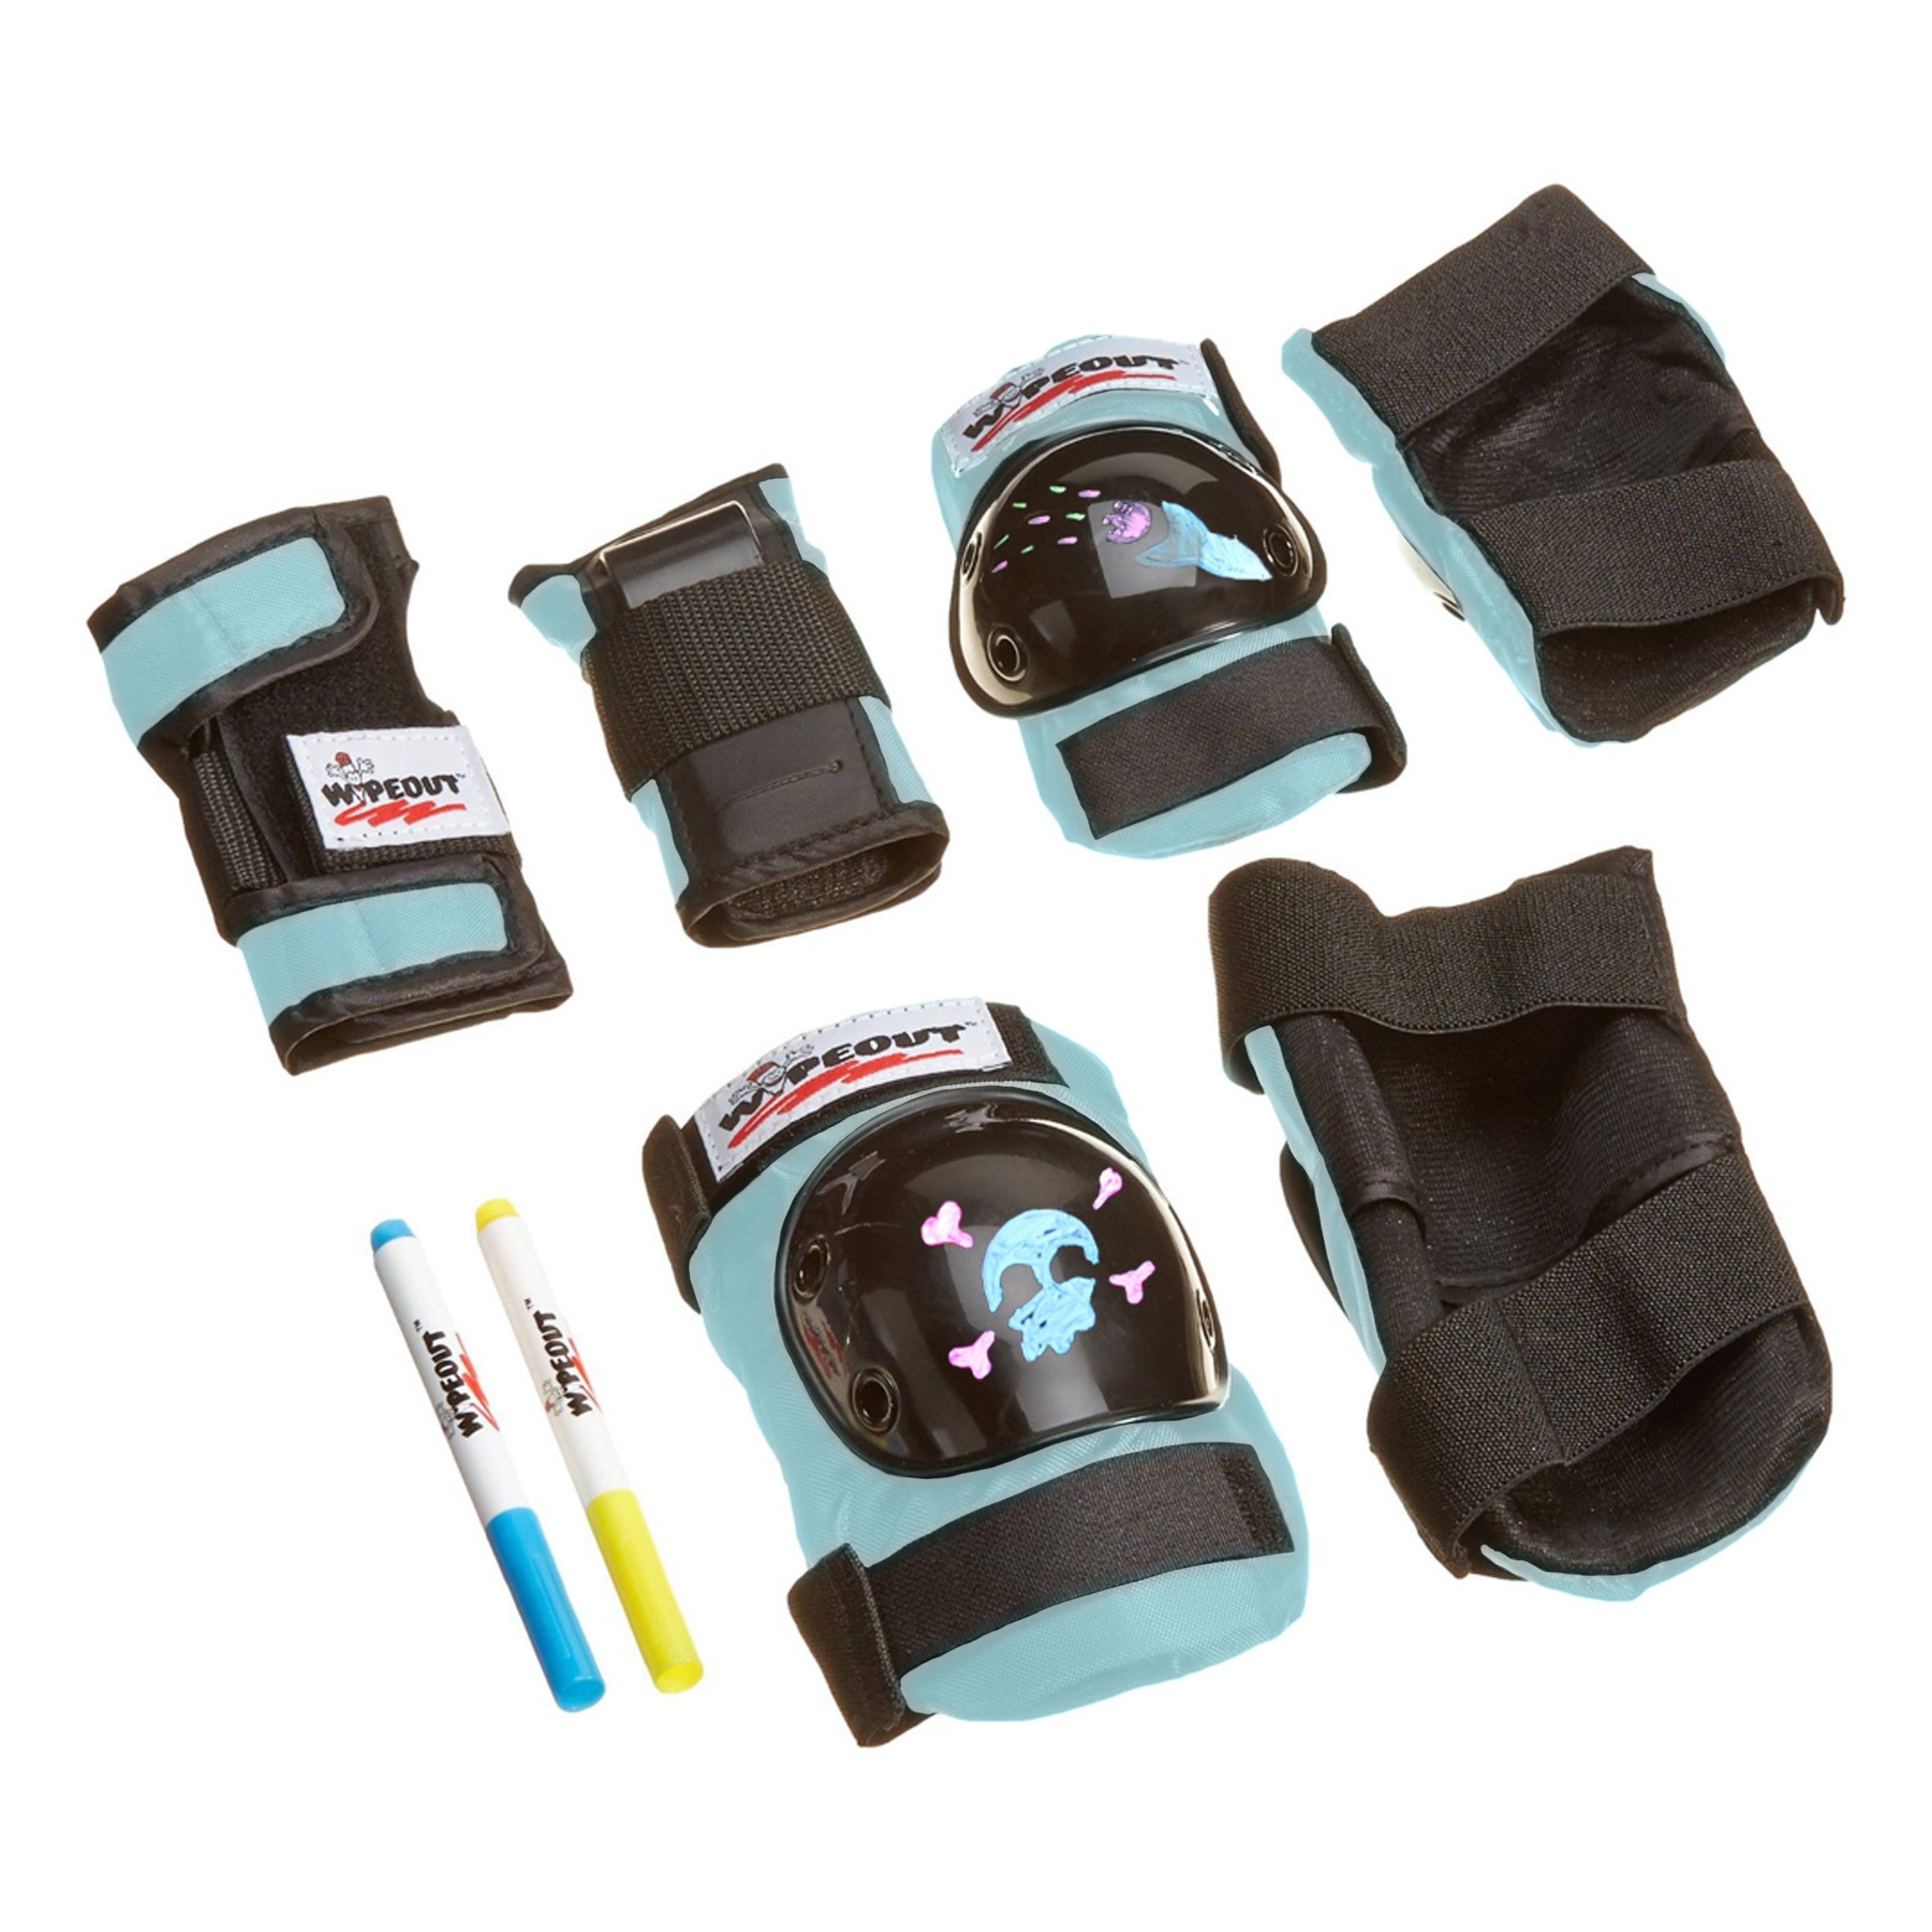 Wipeout Dry Erase Kids' Pad Set with Knee Pads, Elbow Pads, and Wristguards, Teal Blue